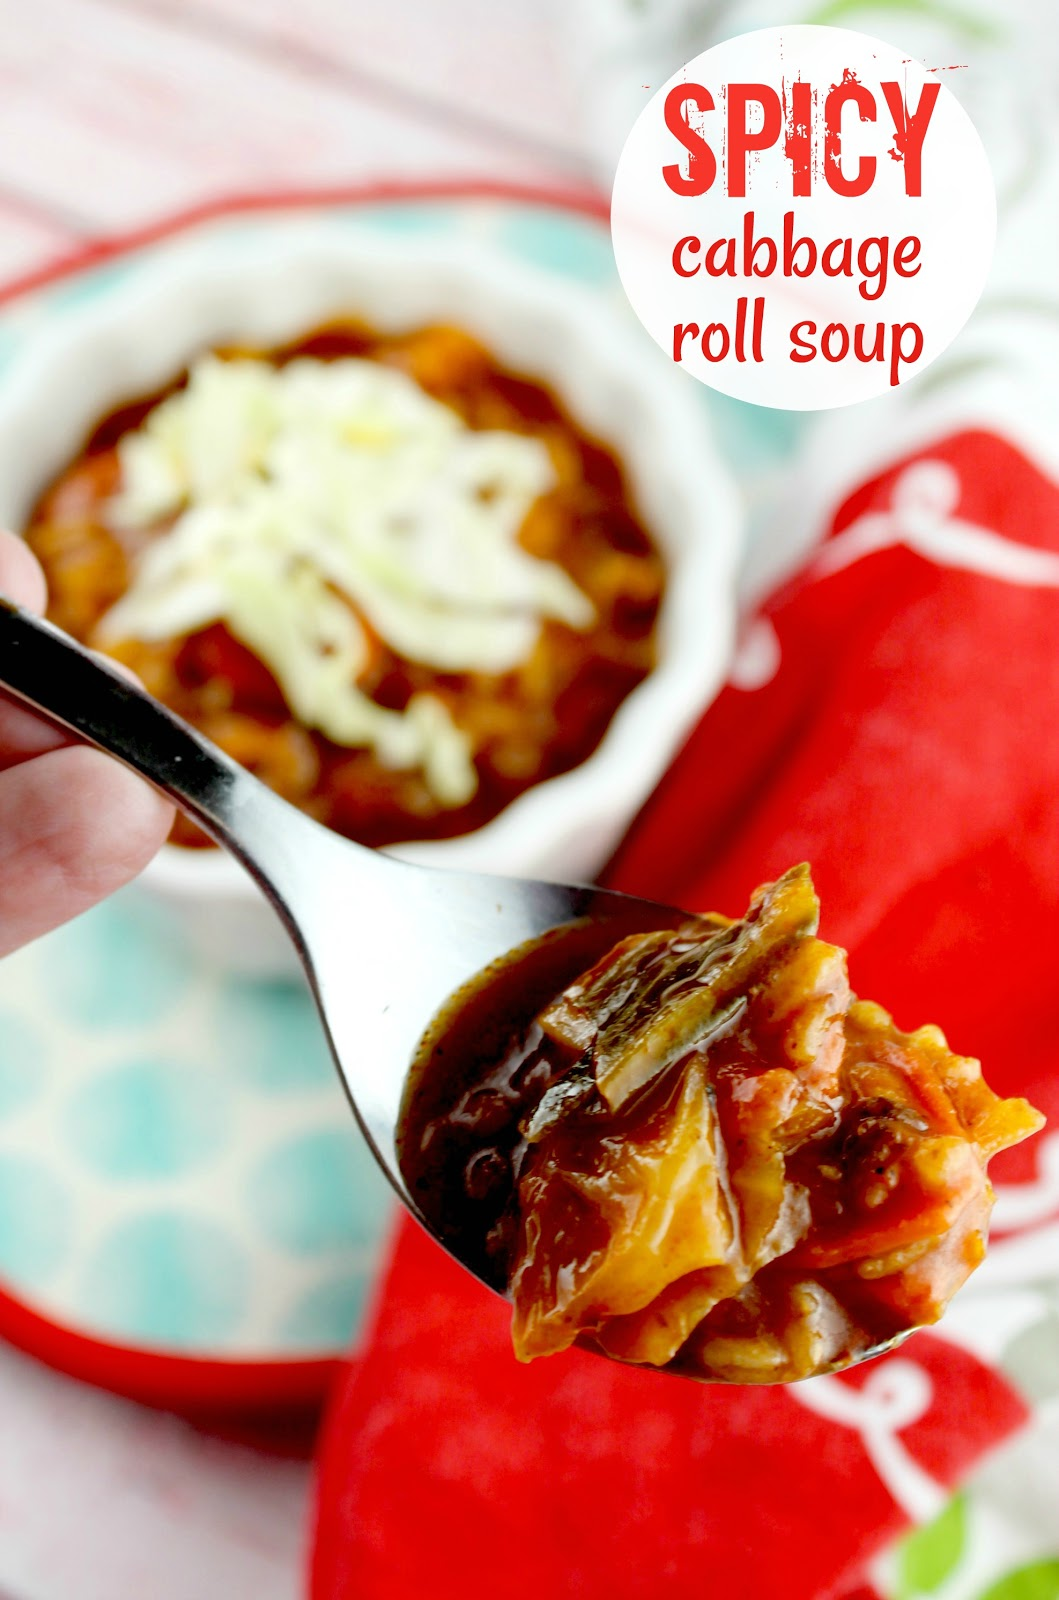 spicy cabbage roll soup